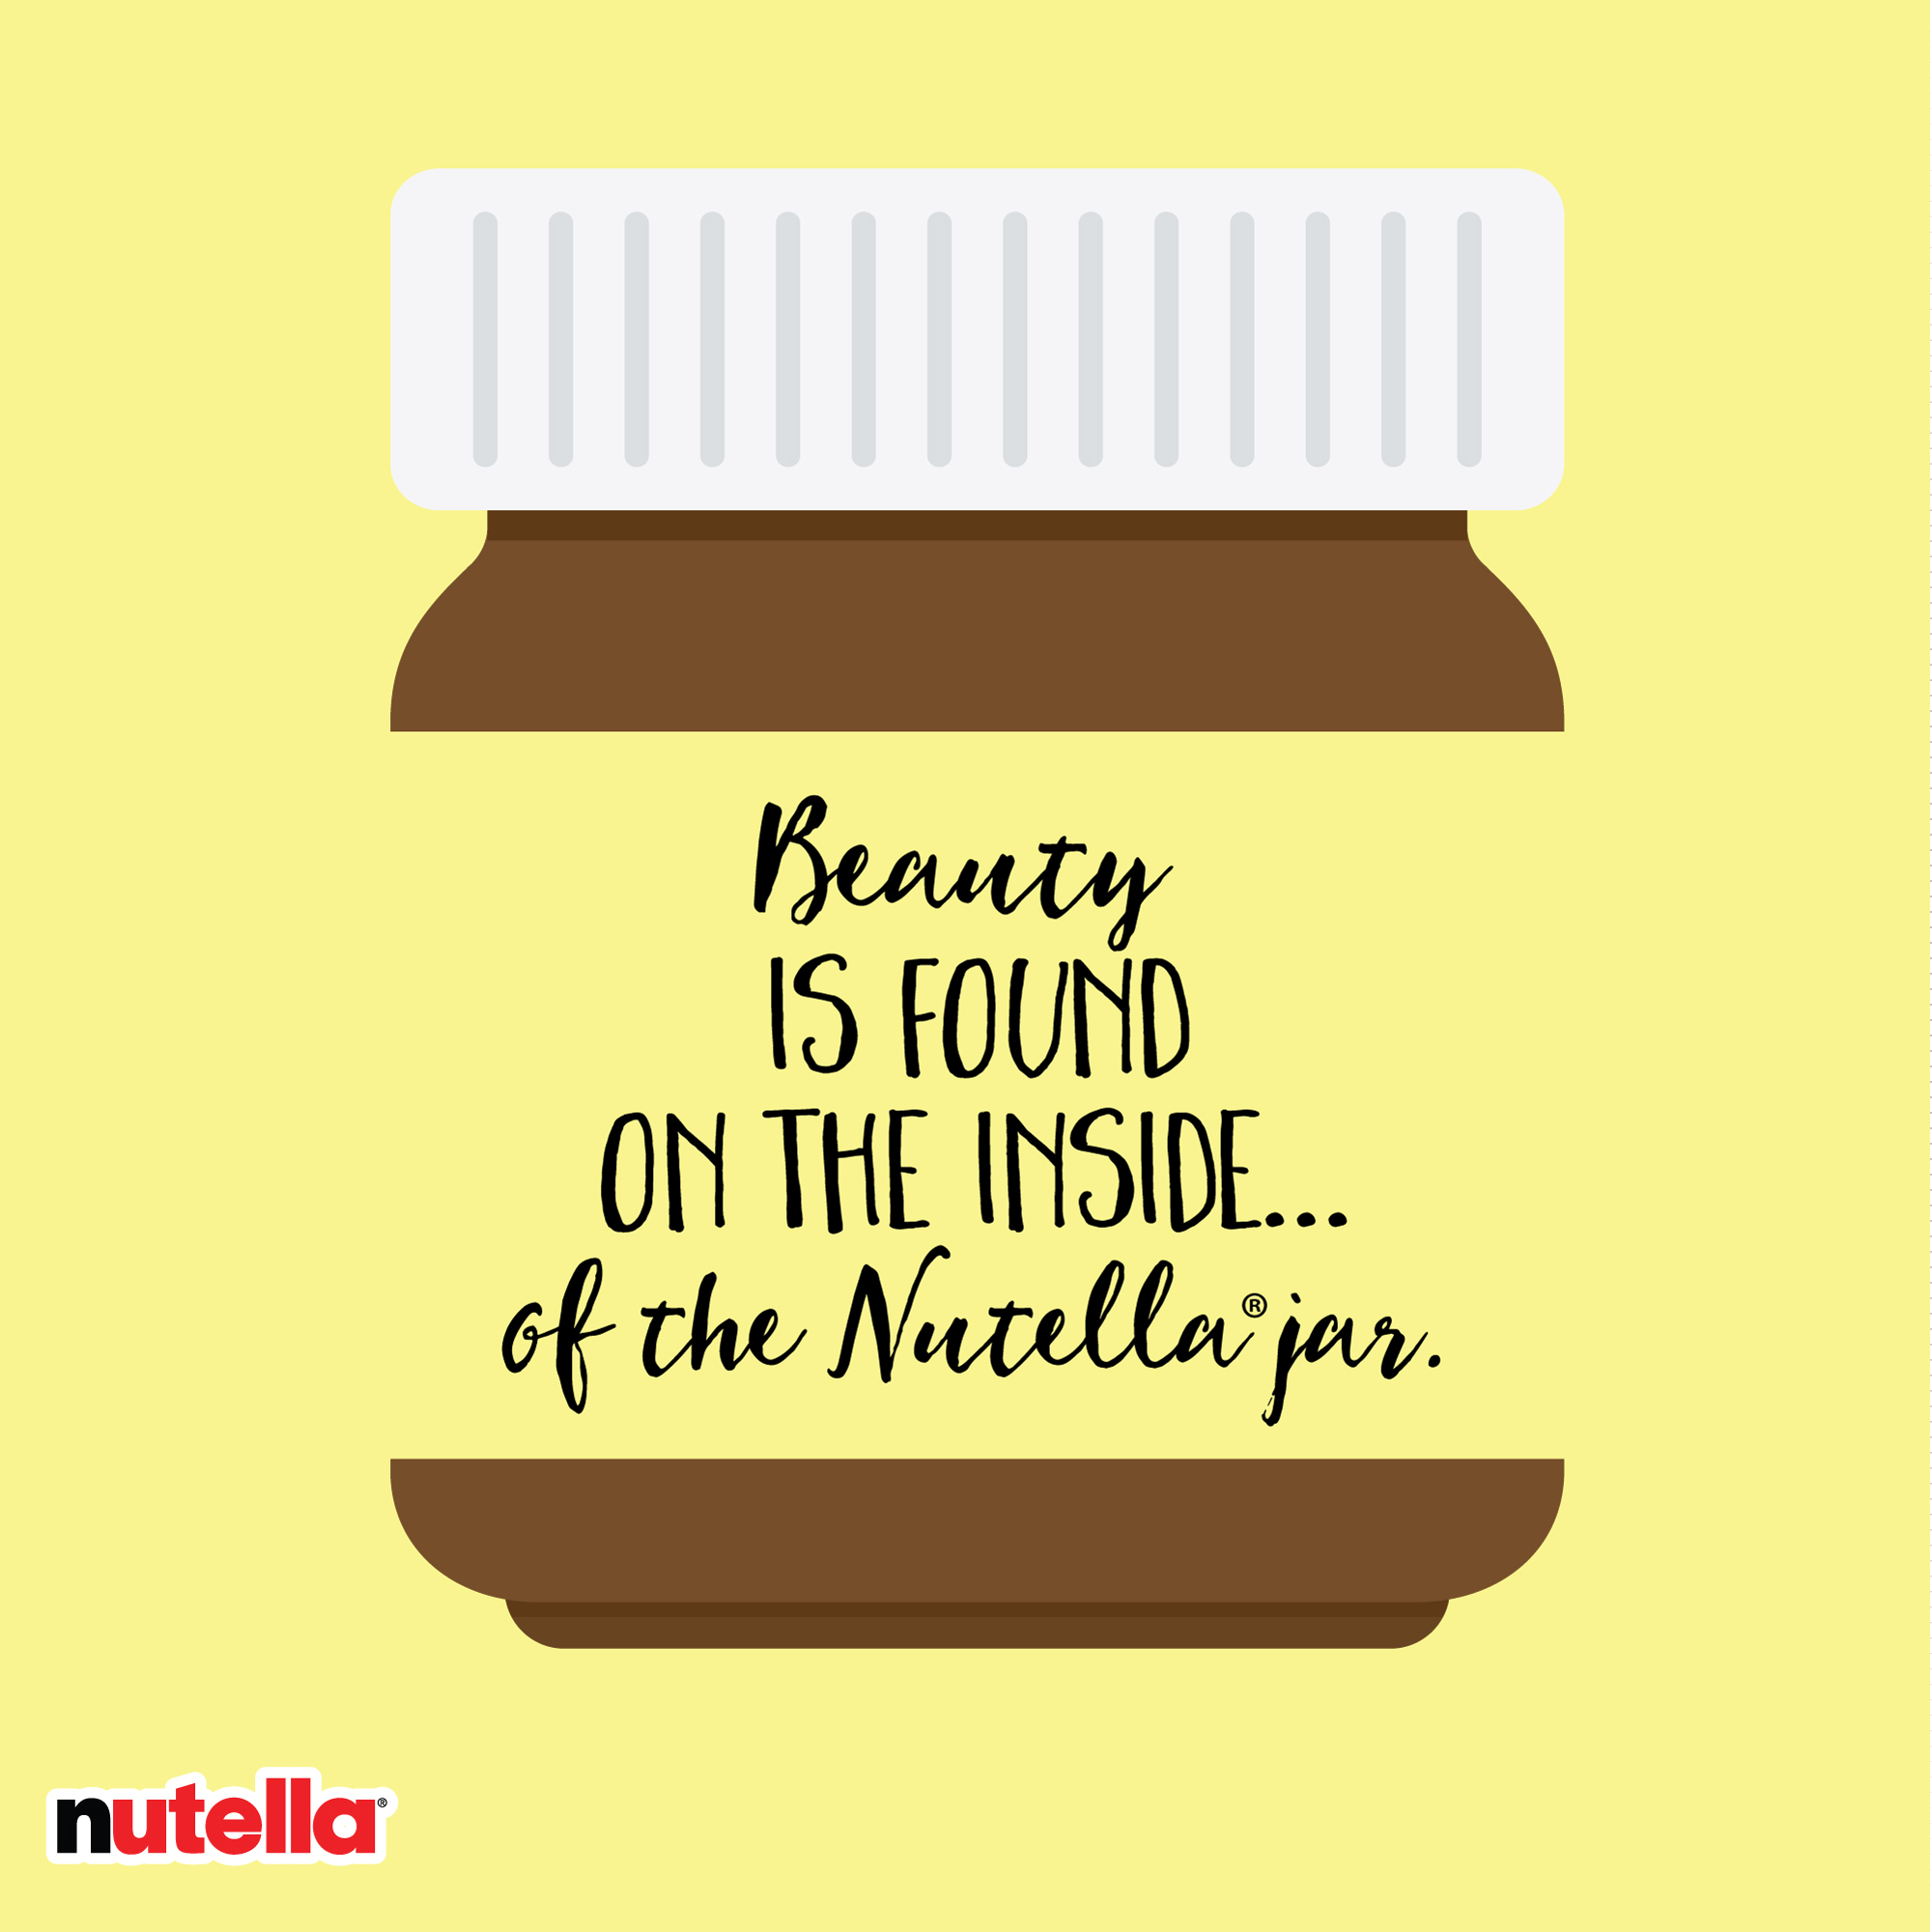 Nutella-Tweet-IG-Beauty.jpg